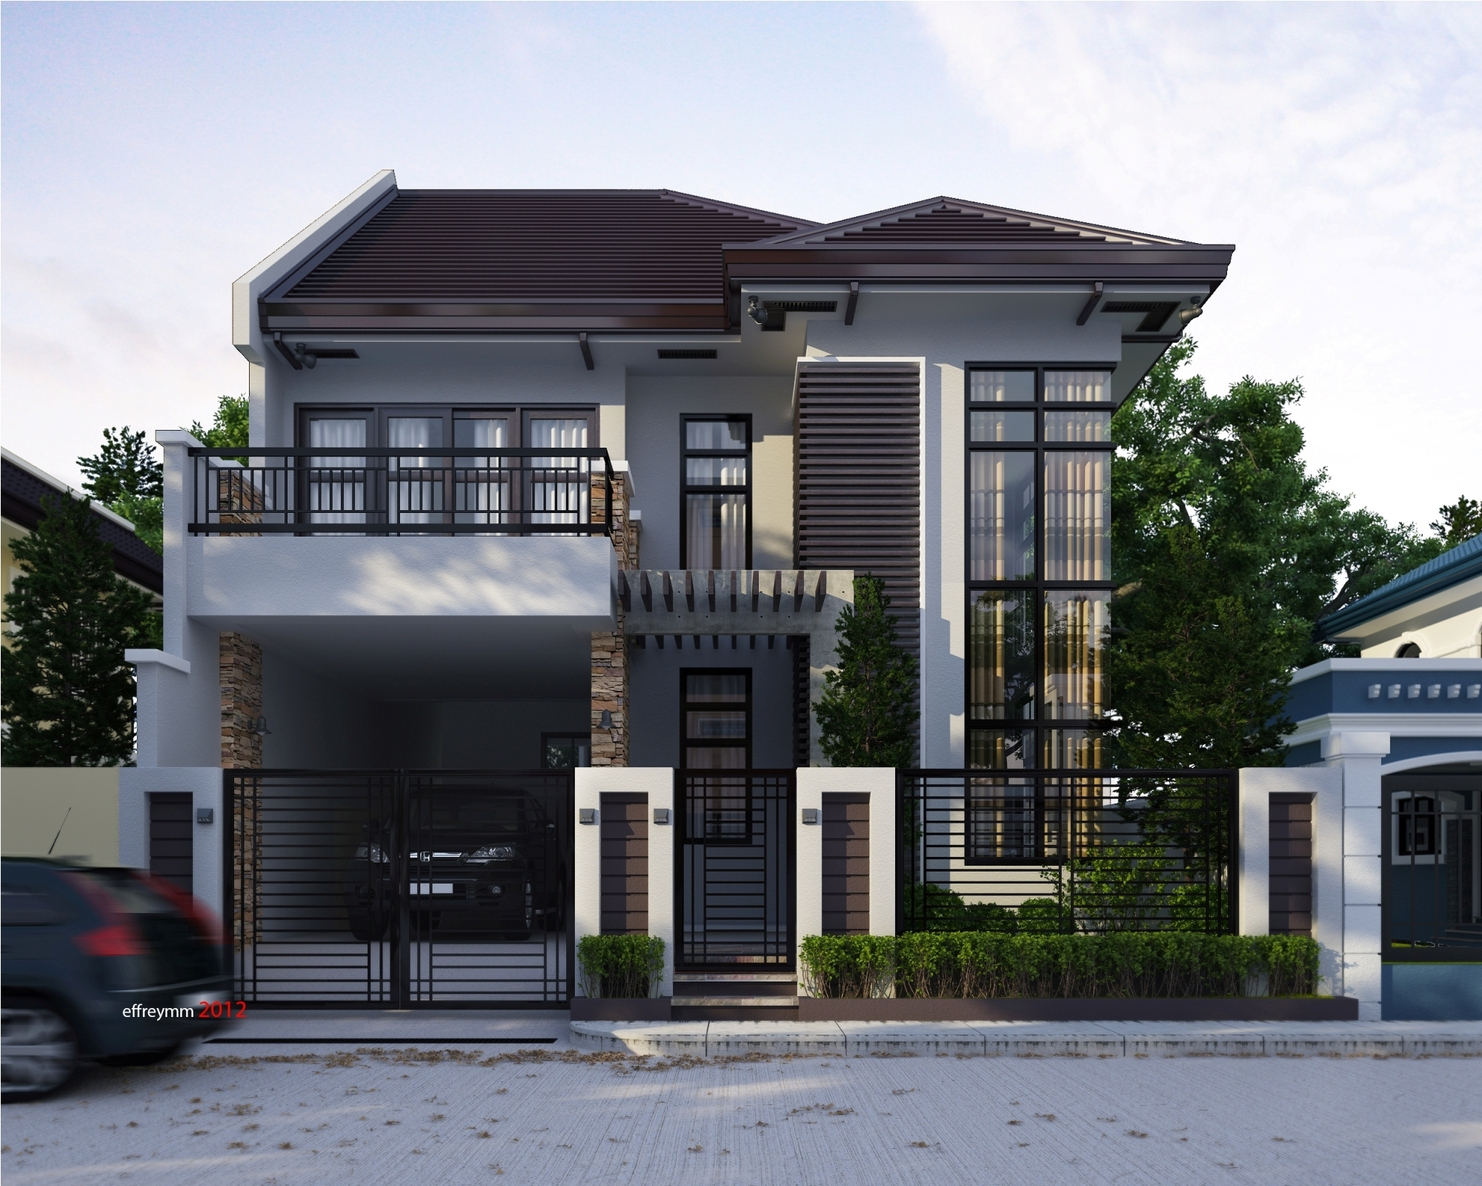 Desain Rumah 50 Meter 2 Lantai 30+ Excruciating Designs For A Small Residential House